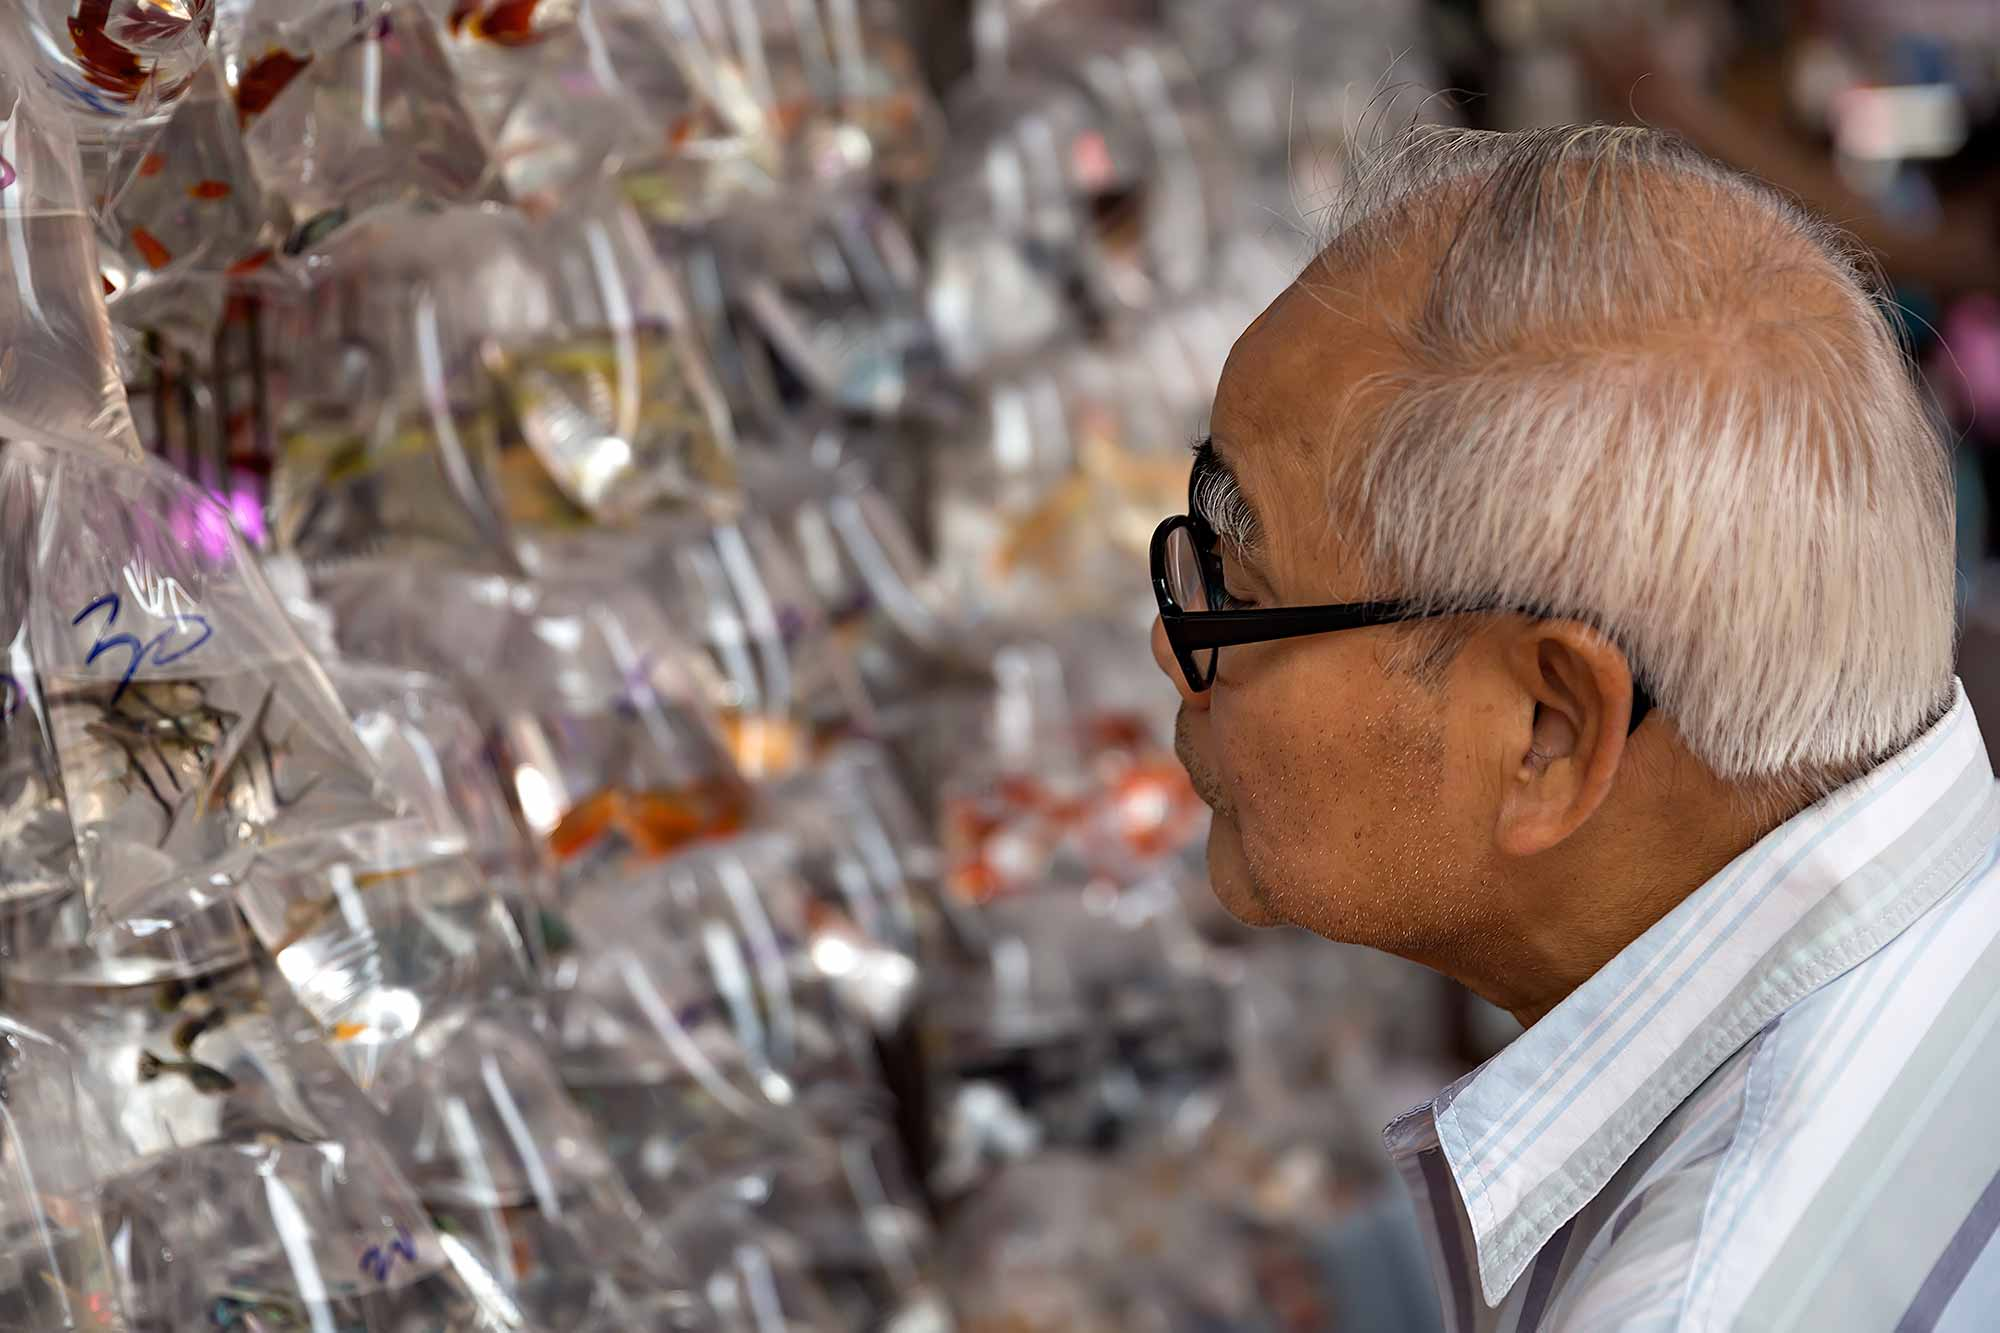 A man deciding which fish to buy in Goldfish Street, Hong Kong. © Ulli Maier & Nisa Maier